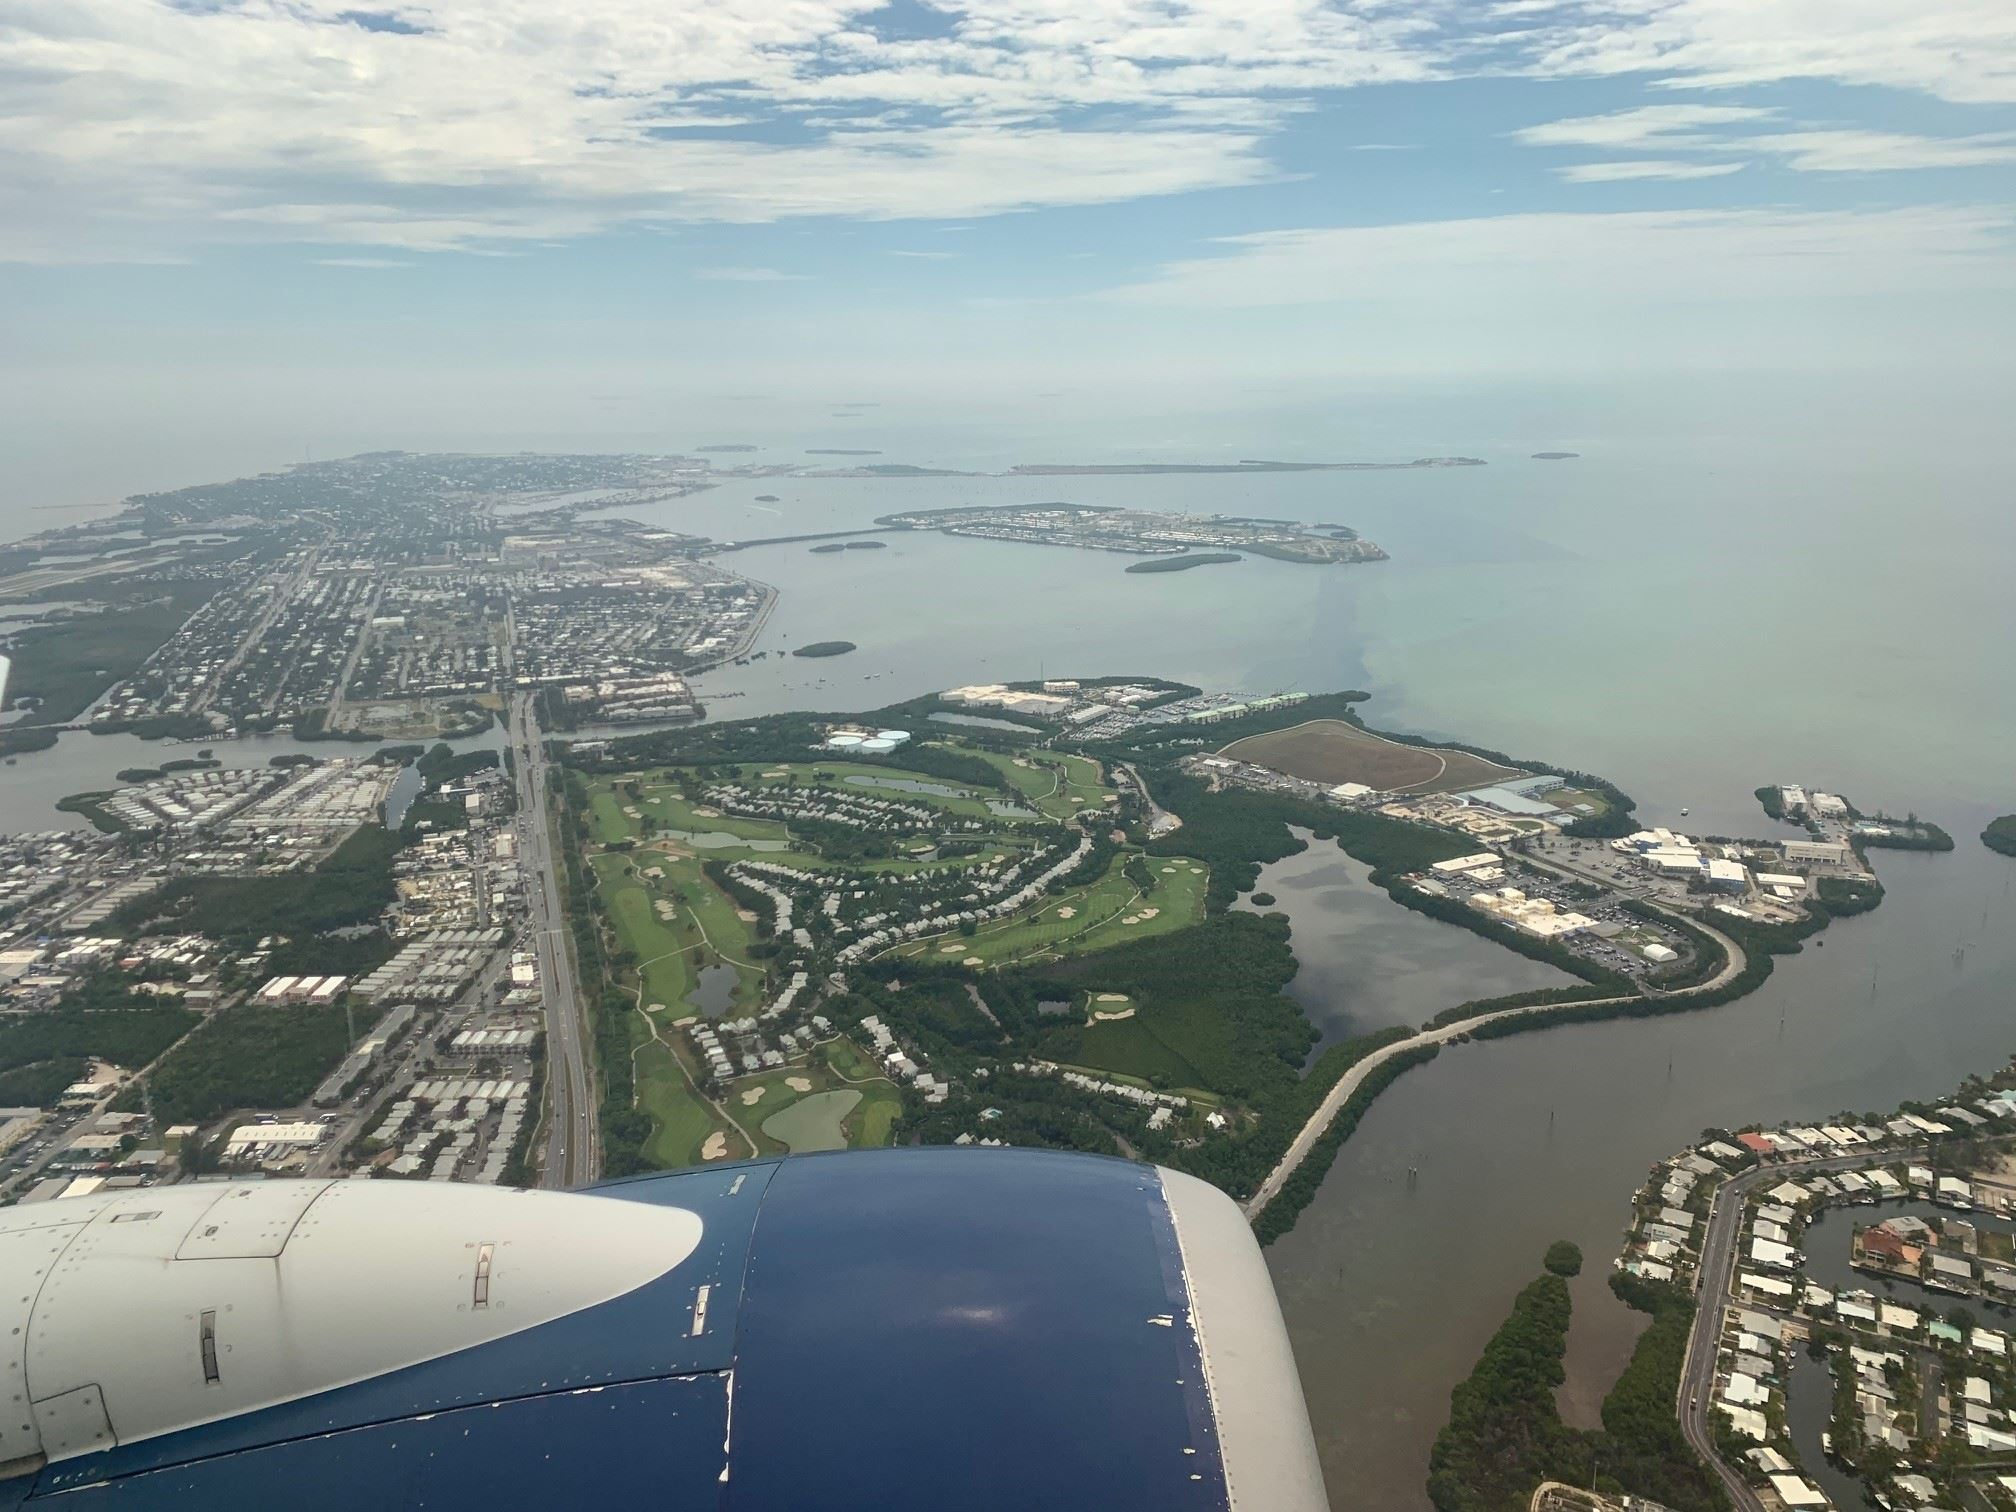 The island of Key West by air after taking off from Key West airport